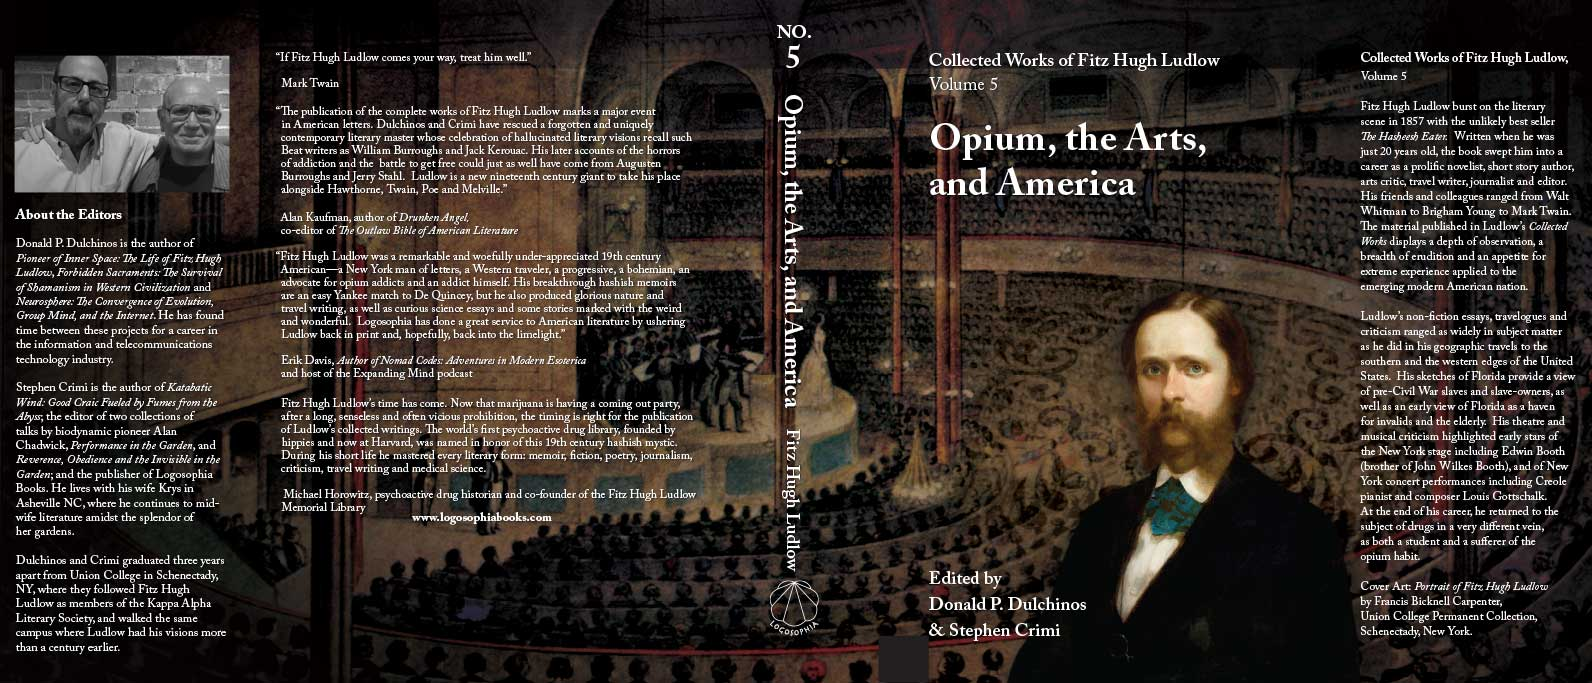 Opium, the Arts